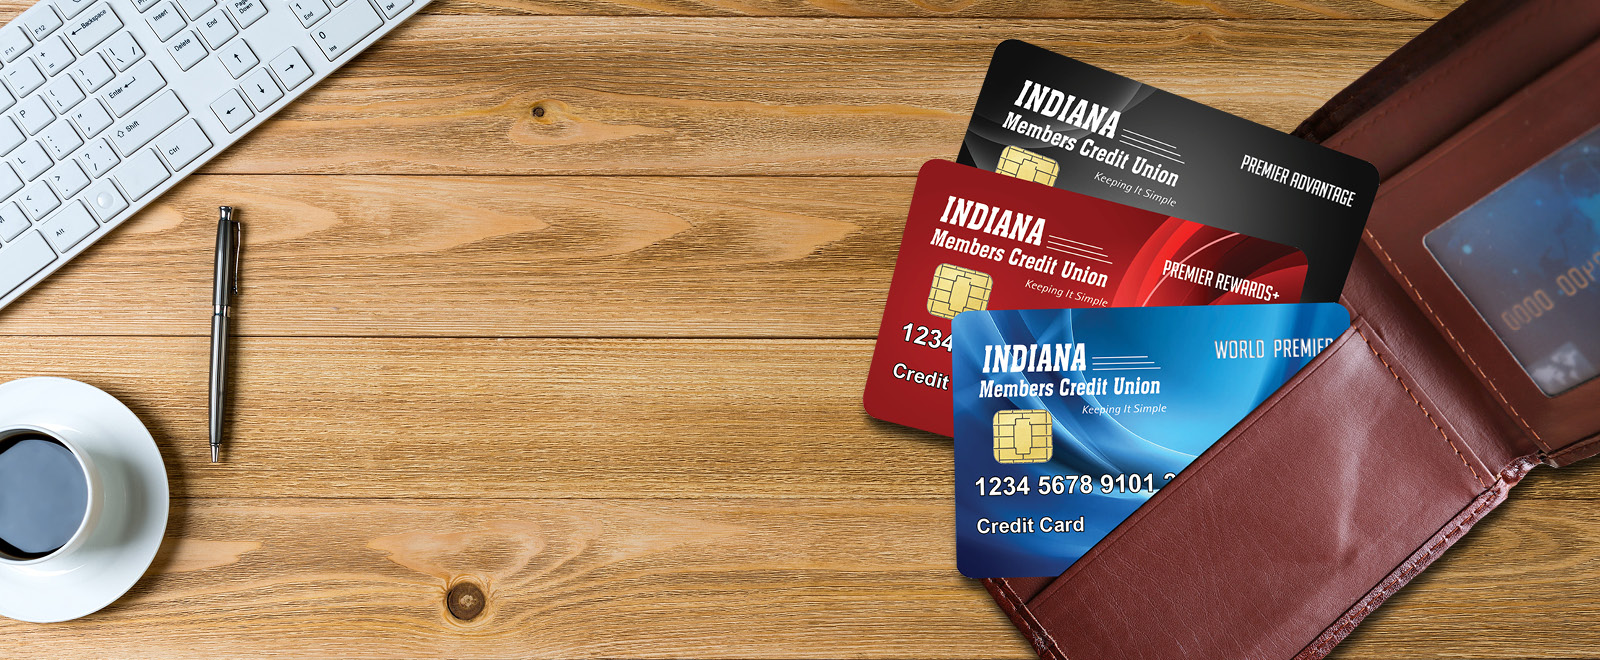 Indiana Members Credit Union credit cards laying on top of a table.